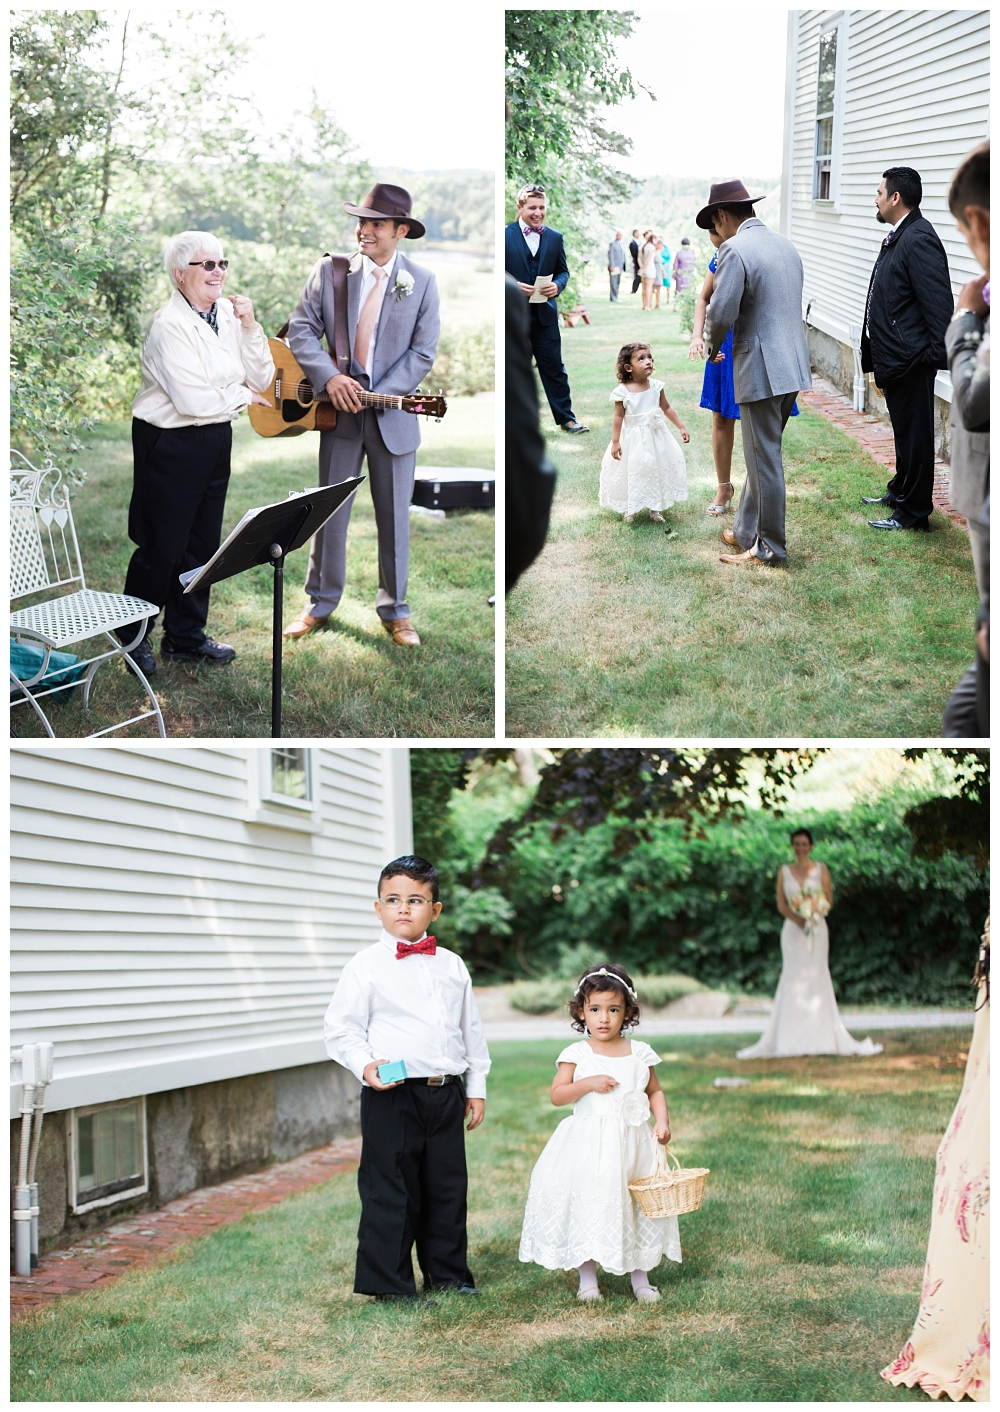 Maine Wedding Photographer Clark's Cove Farm & Inn Ringbearer Flower Girl